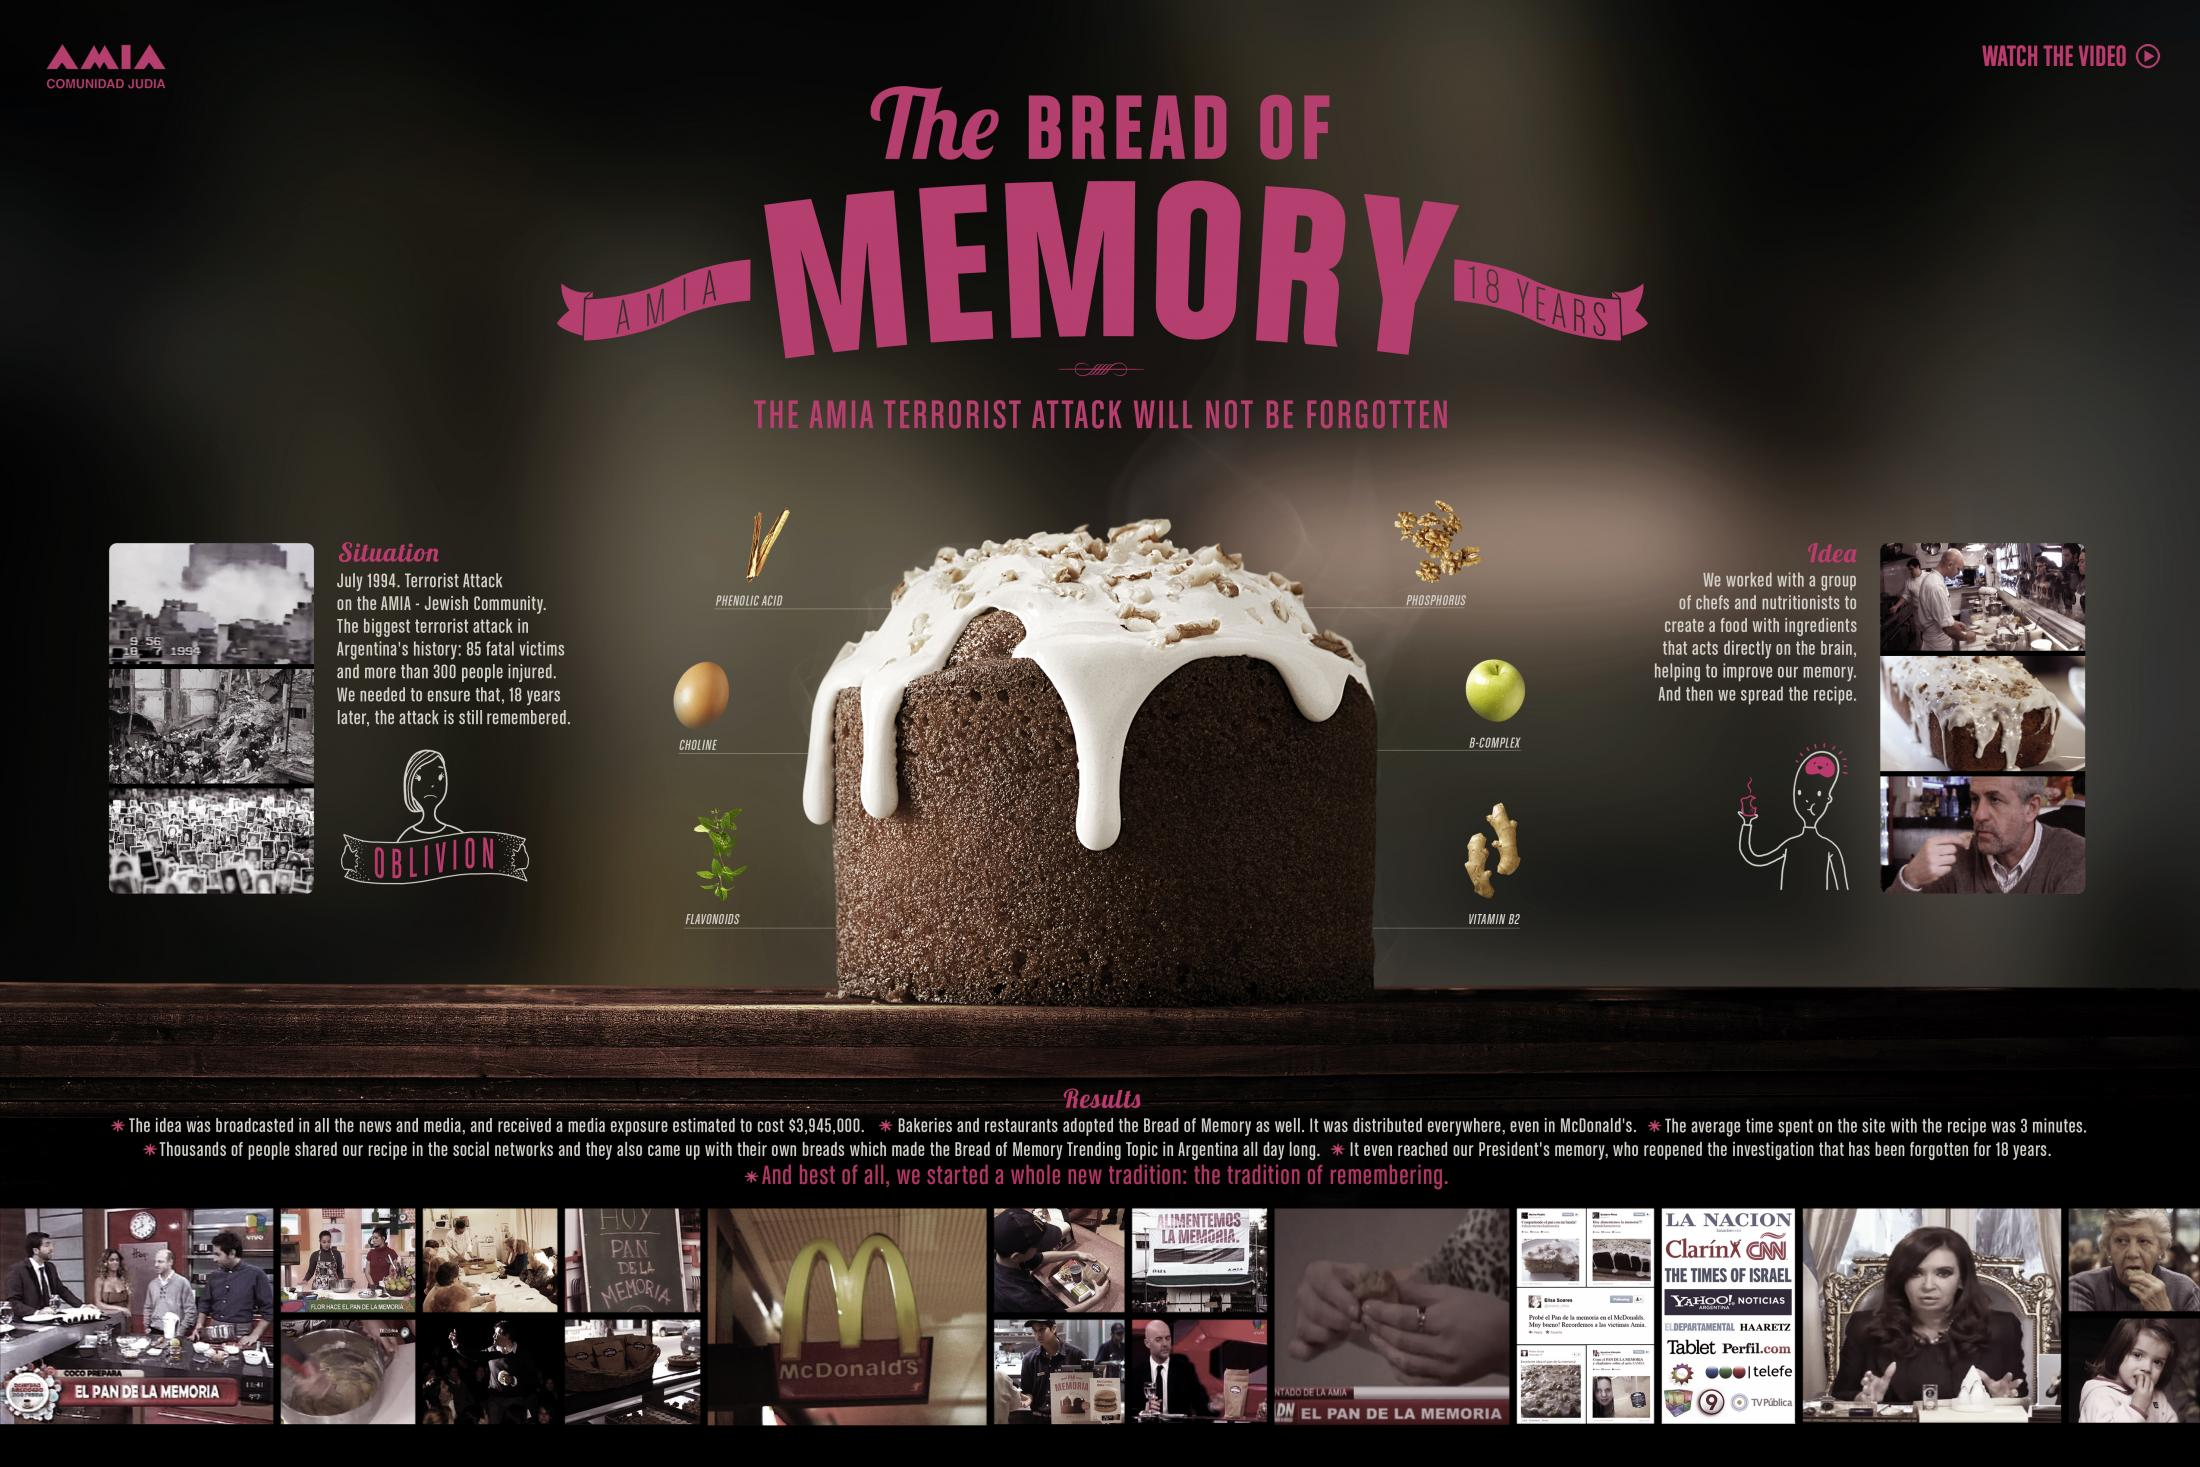 Thumbnail for The bread of memory